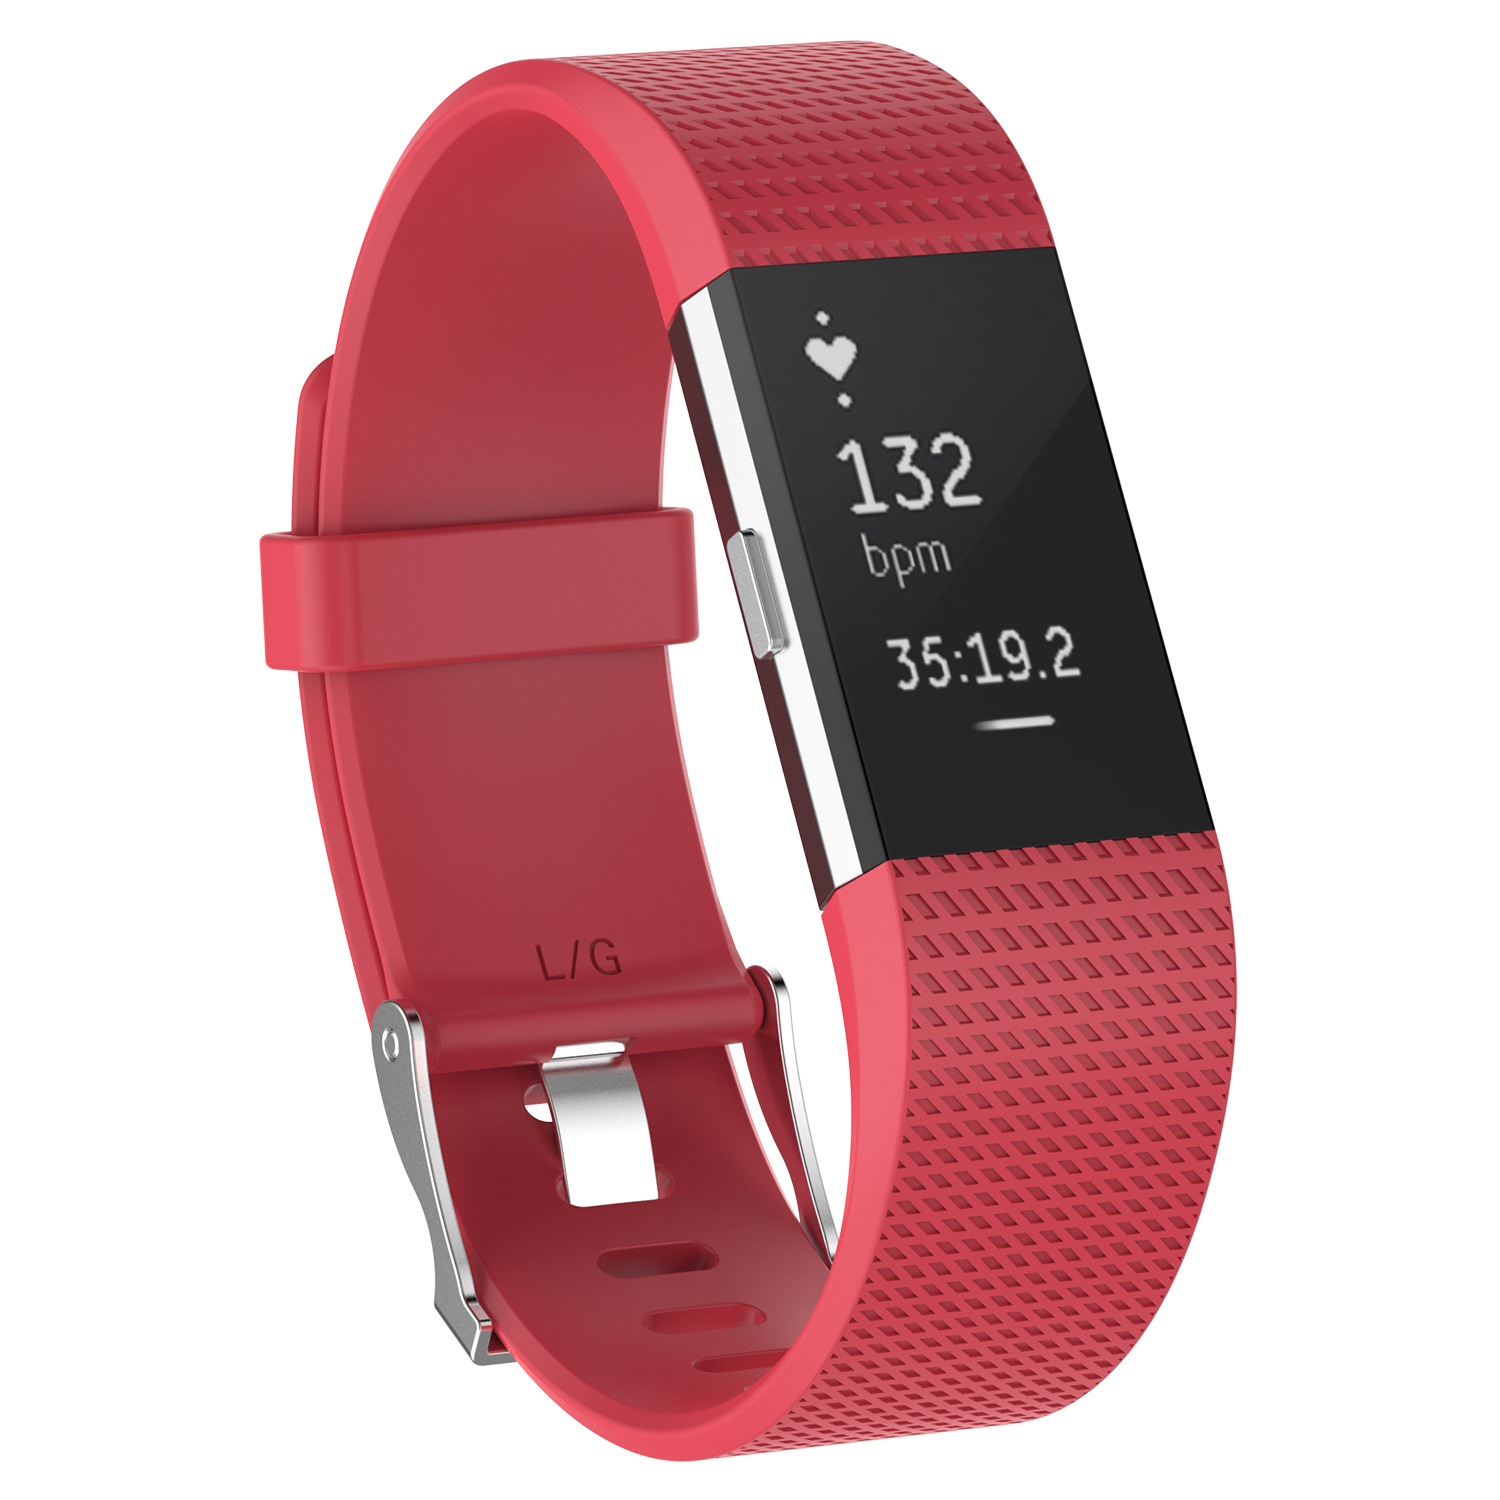 Replacement-Silicone-Wristband-Watch-Strap-Bands-Bracelet-For-Fitbit-Charge-2 thumbnail 20